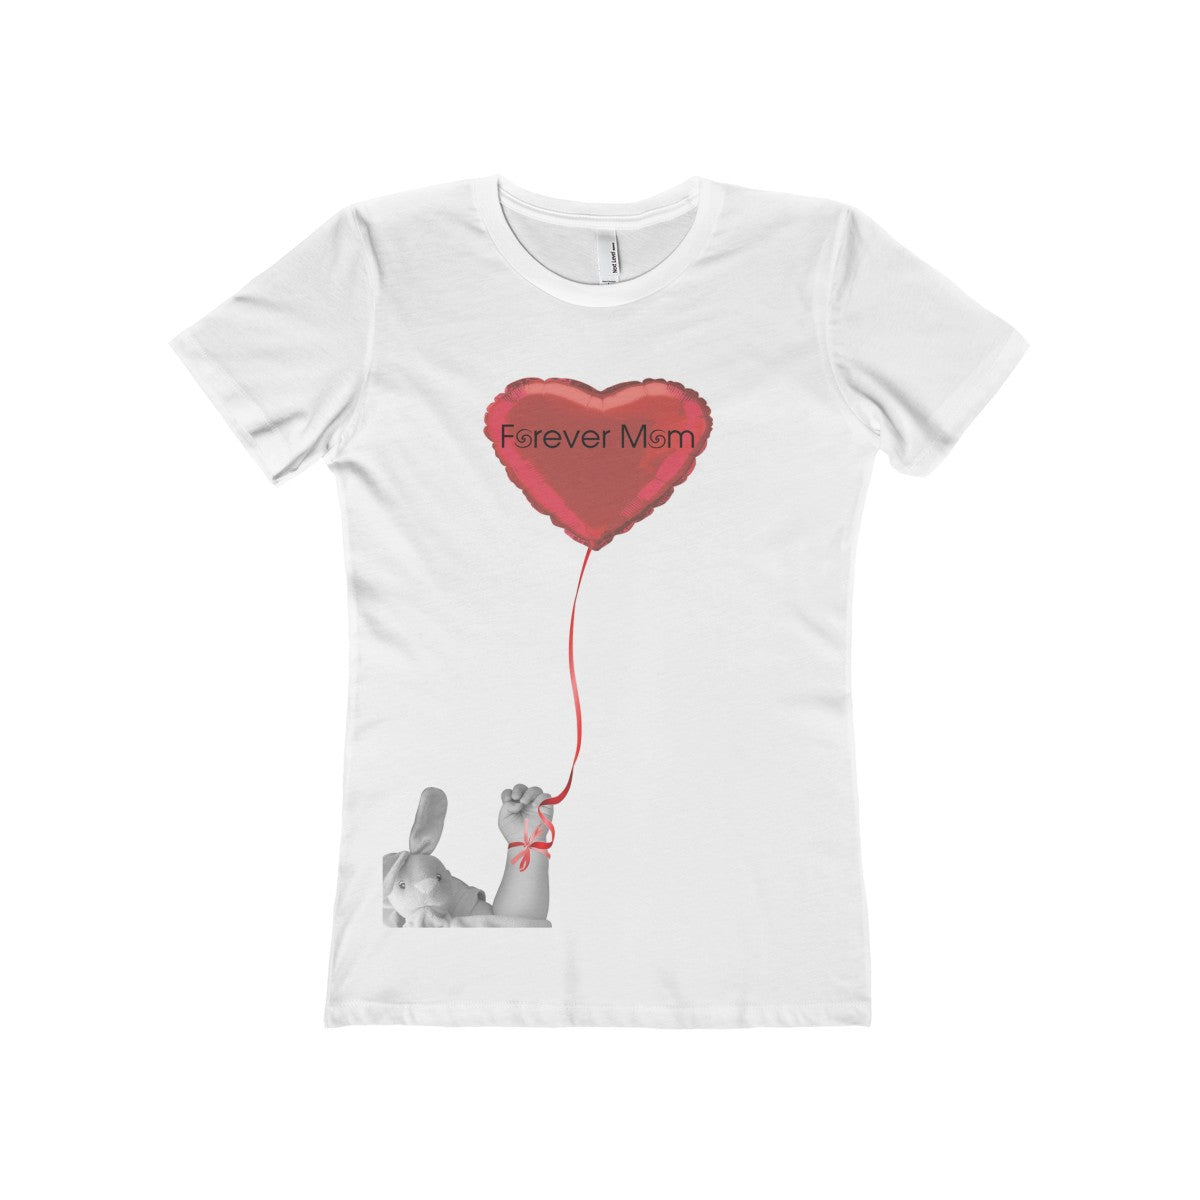 Forever Mom Balloon T